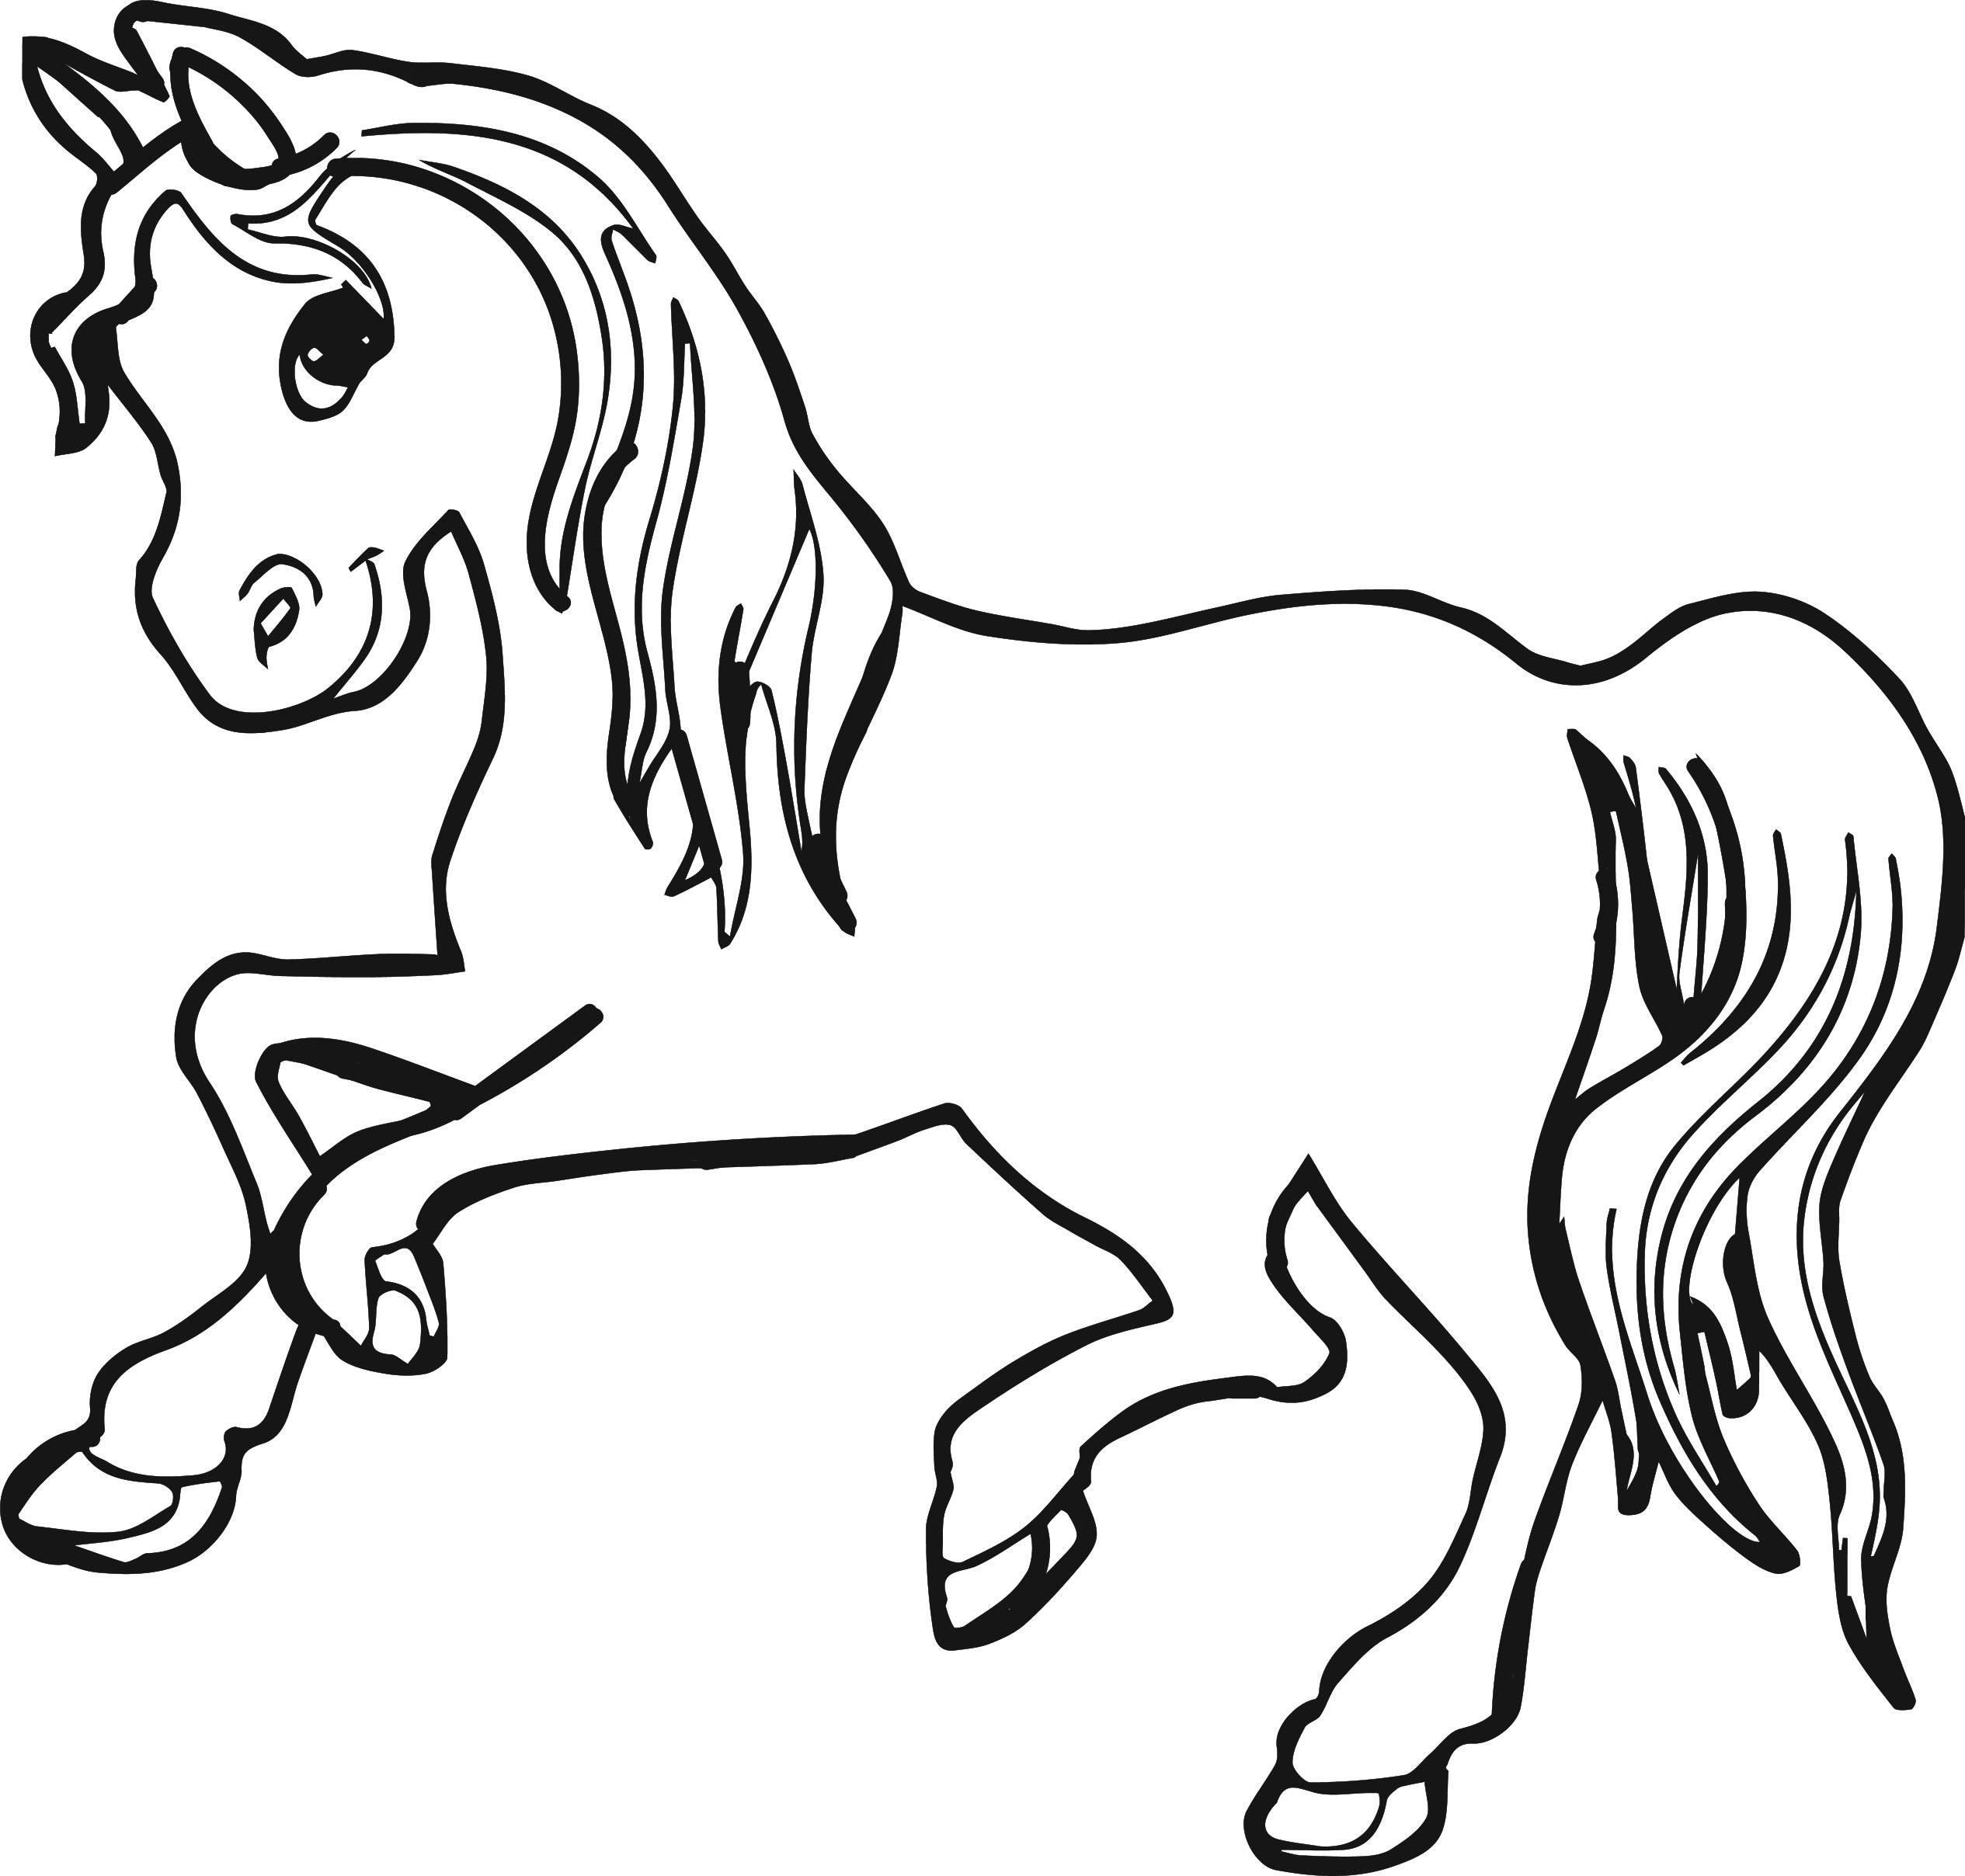 horse colouring pages 30 best horse coloring pages ideas we need fun colouring pages horse